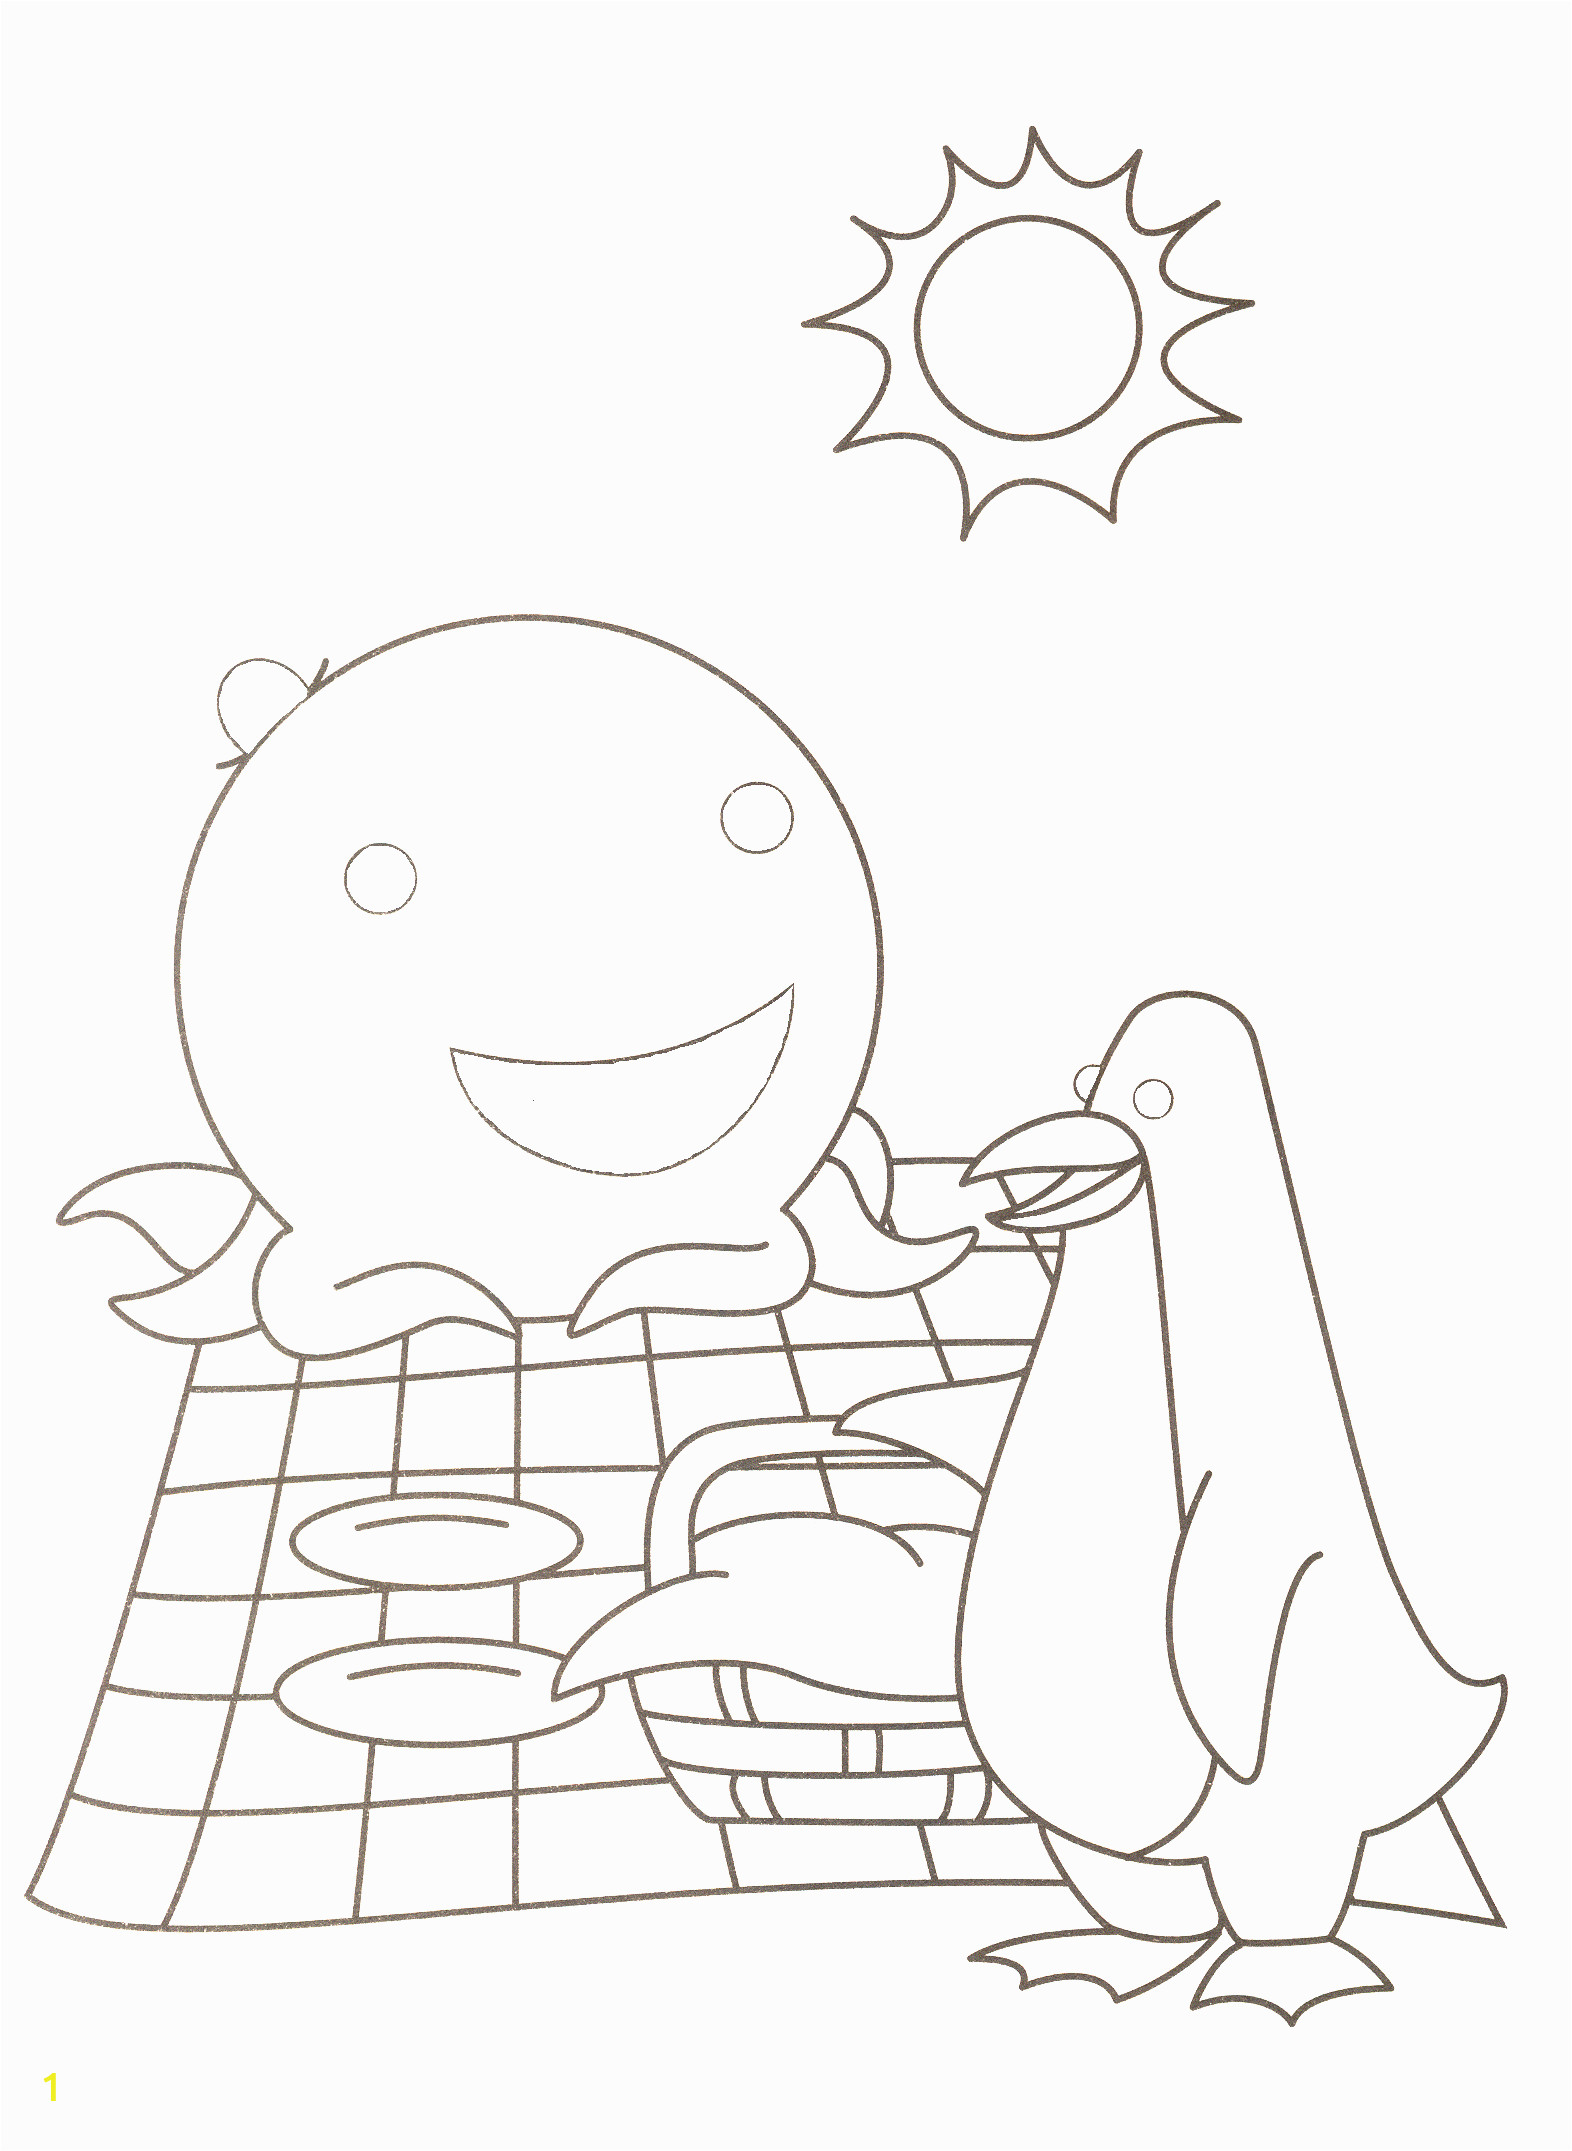 oswald the lucky rabbit coloring pages sketch templates